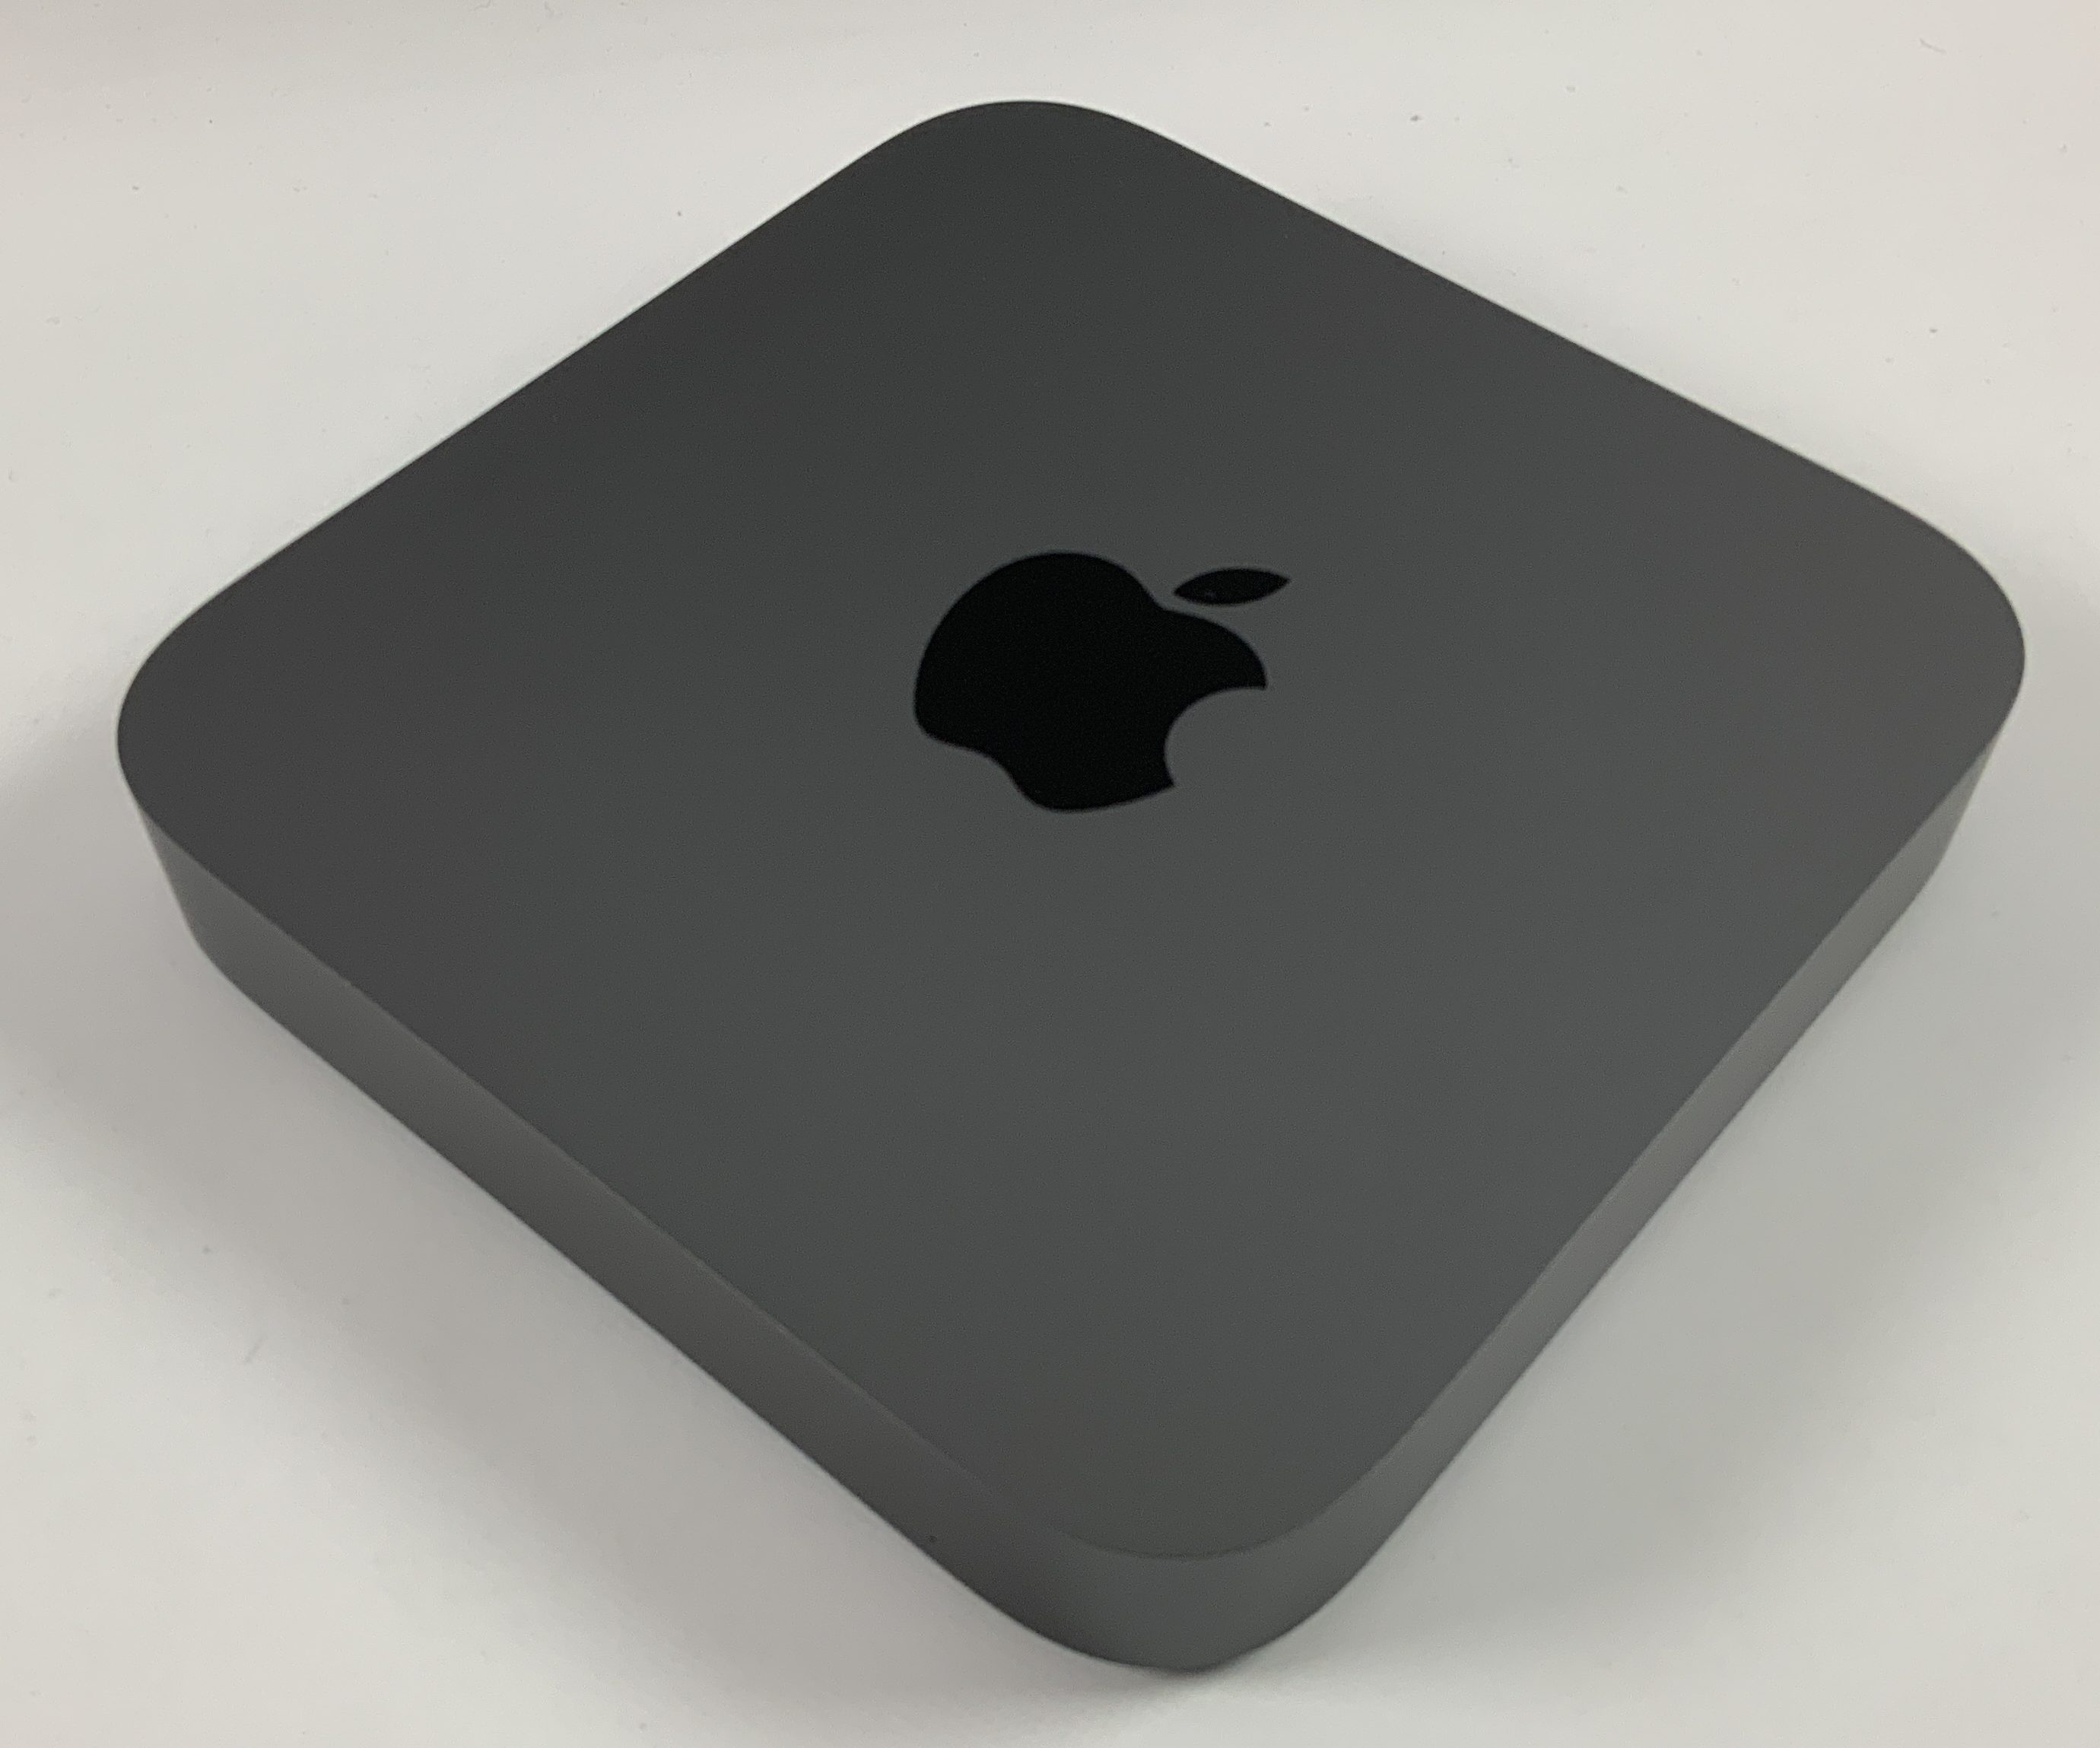 Mac Mini Late 2018 (Intel Quad-Core i3 3.6 GHz 8 GB RAM 256 GB SSD), Intel Quad-Core i3 3.6 GHz, 8 GB RAM, 256 GB SSD, imagen 4